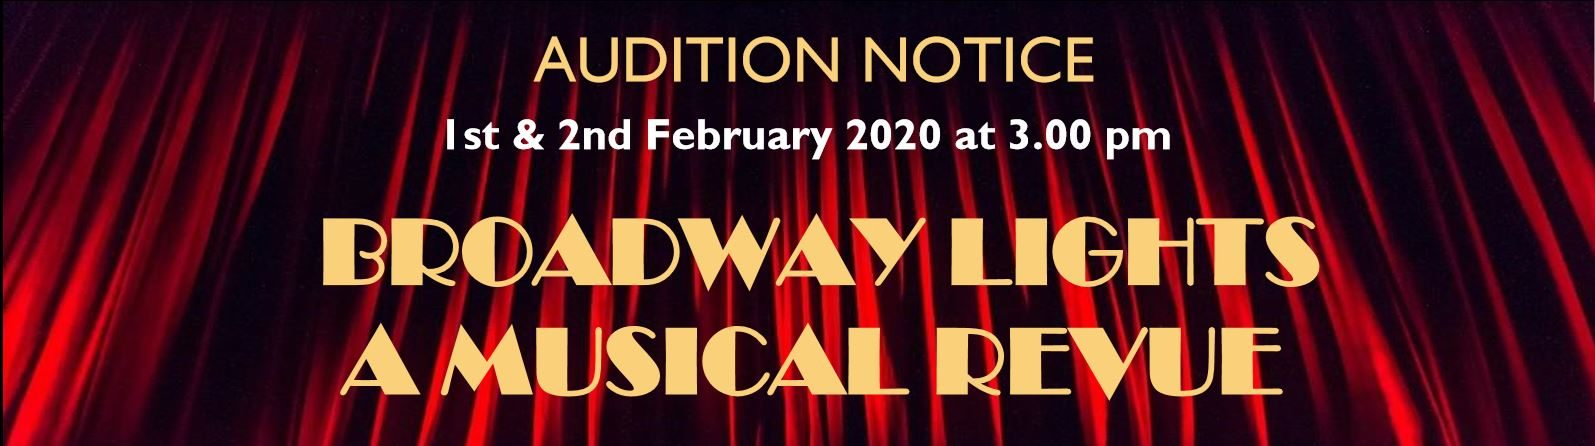 Audition Notice 1st & 2nd February 2020 at 3.00 pm BROADWAY LIGHTS A MUSICAL REVUE